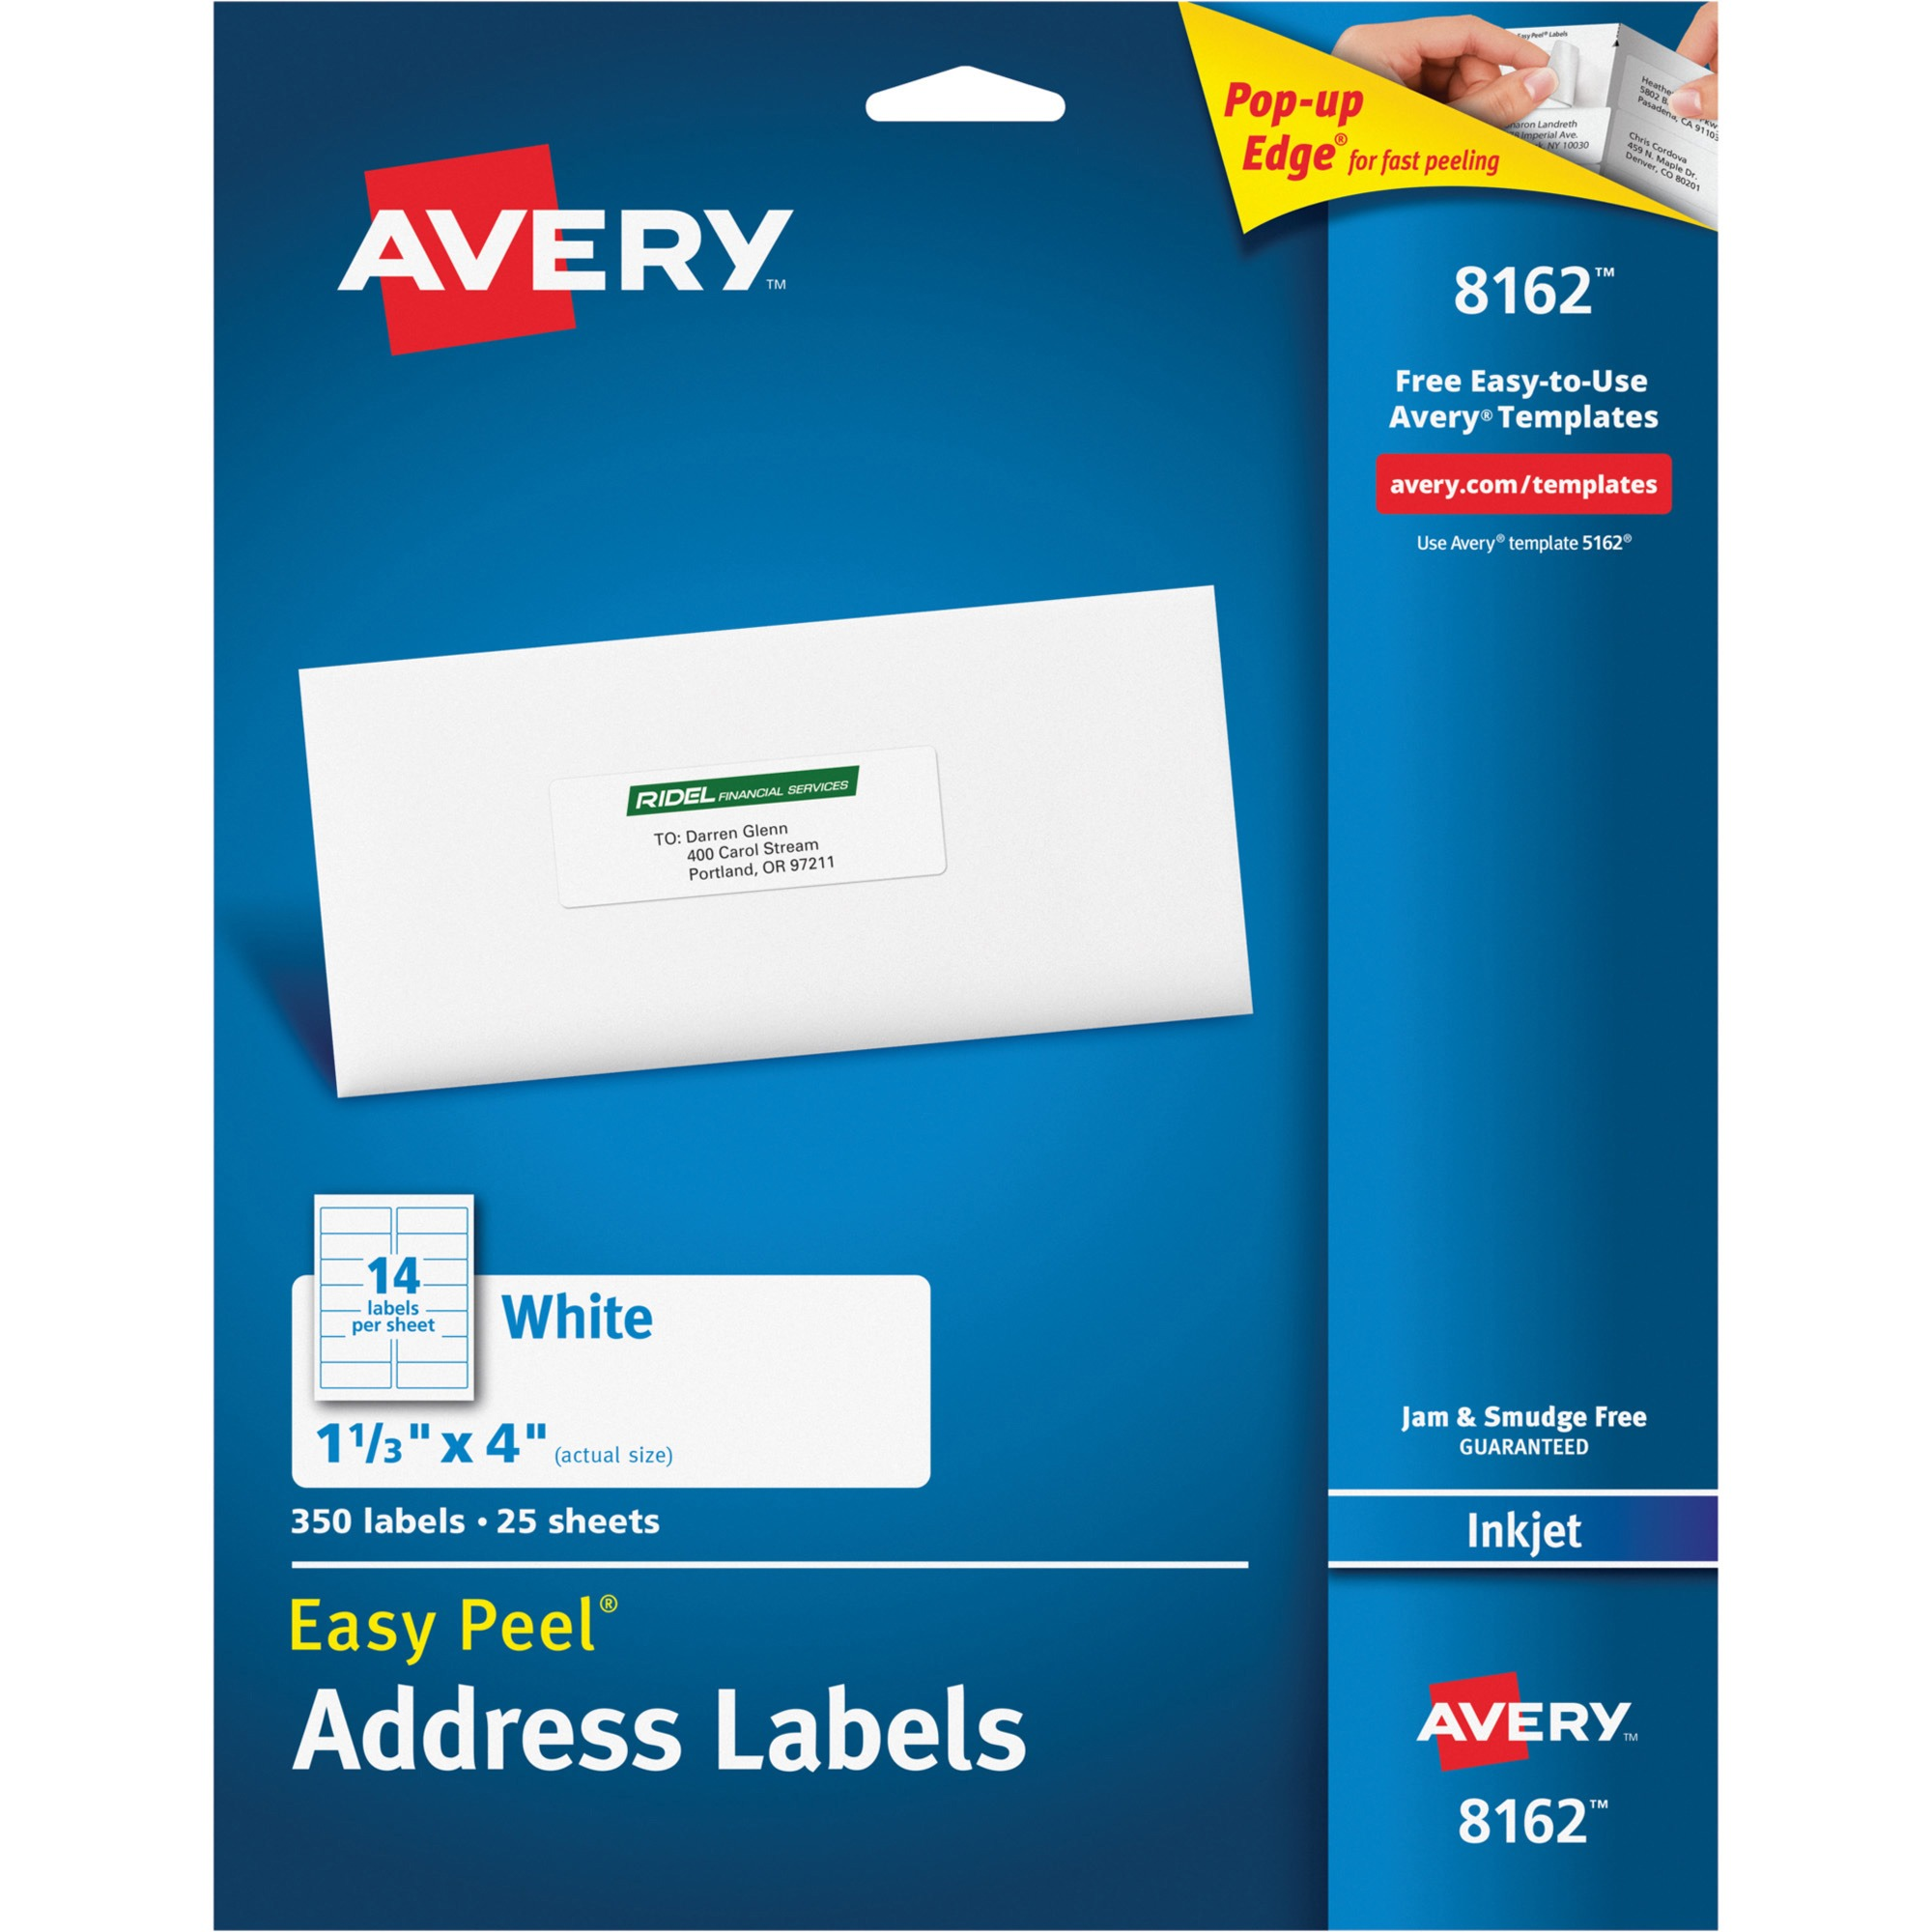 "Avery Dennison Inkjet Labels, Mailing, 1-1/3""X4"", 350/Pack, White ..."